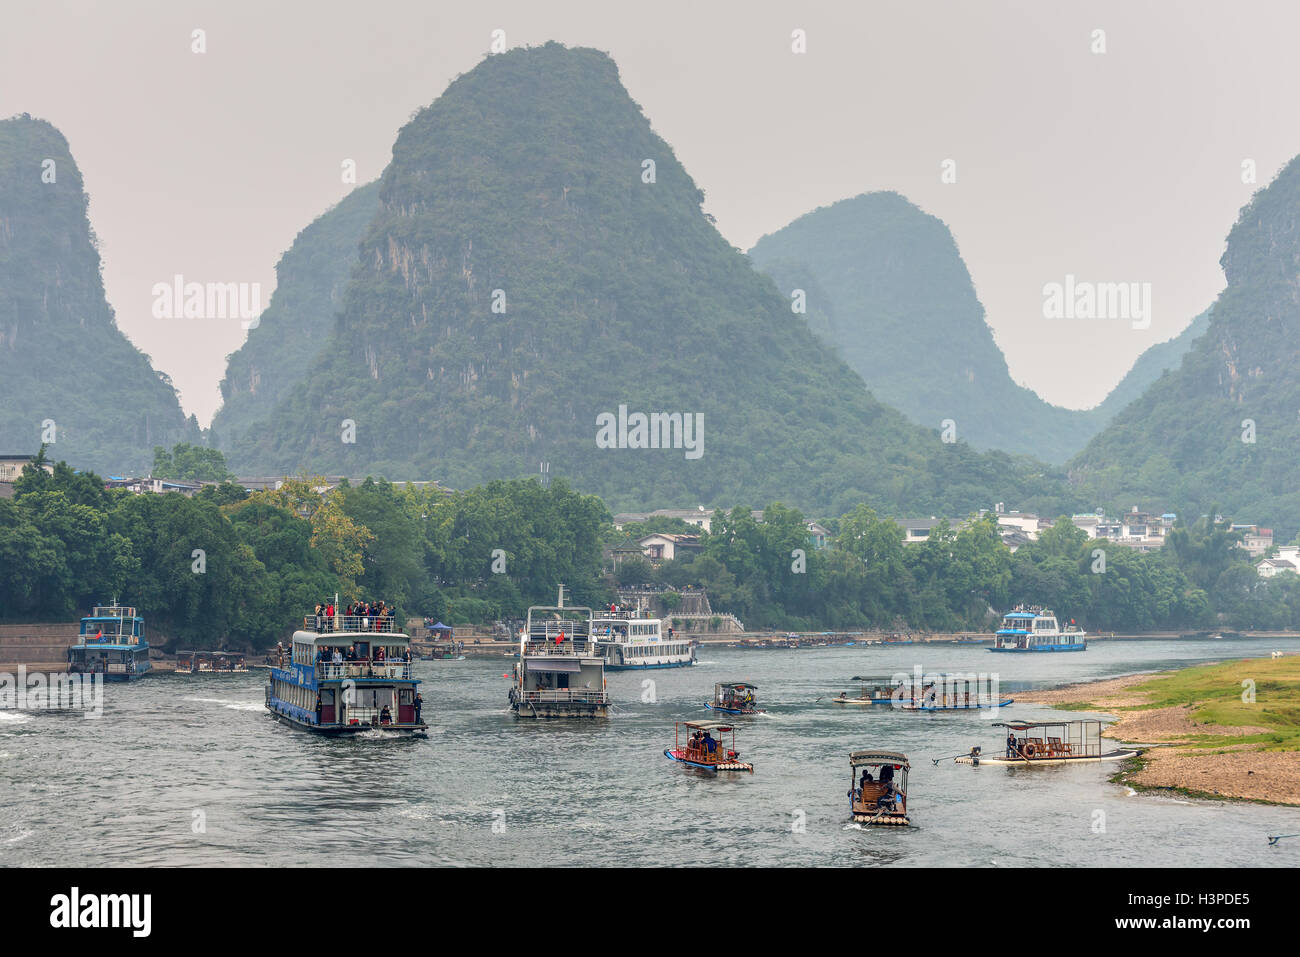 Tourist Boats traffic in cloudy weather on the Li River, Yangshuo Stock Photo